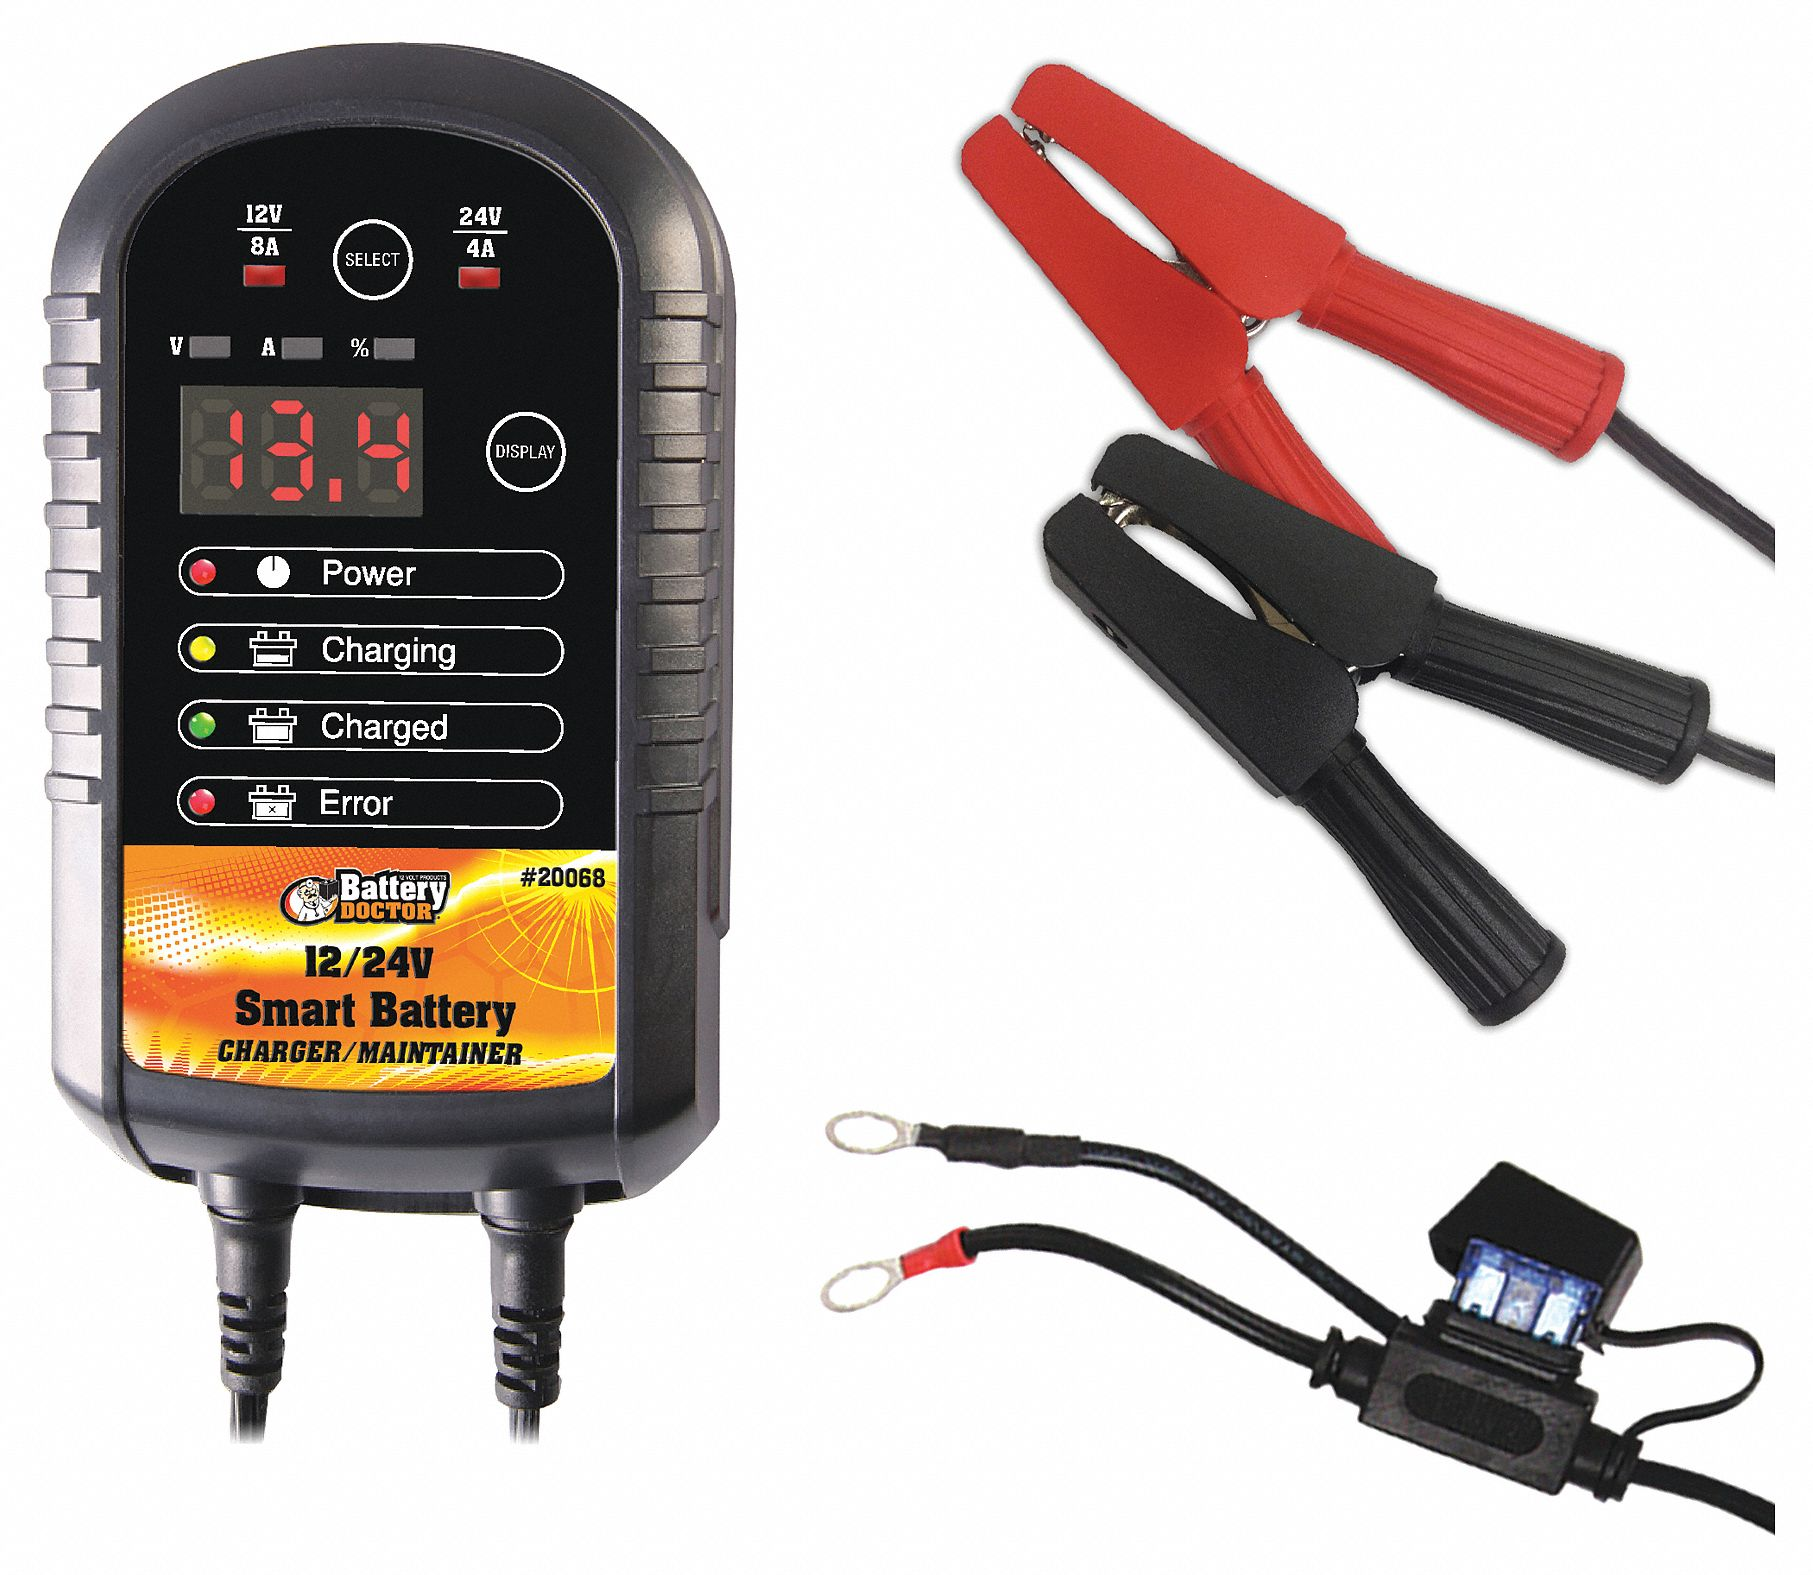 Battery Doctor Automatic Battery Charger And Maintainer Charging Maintaining 48vf14 20068 Grainger